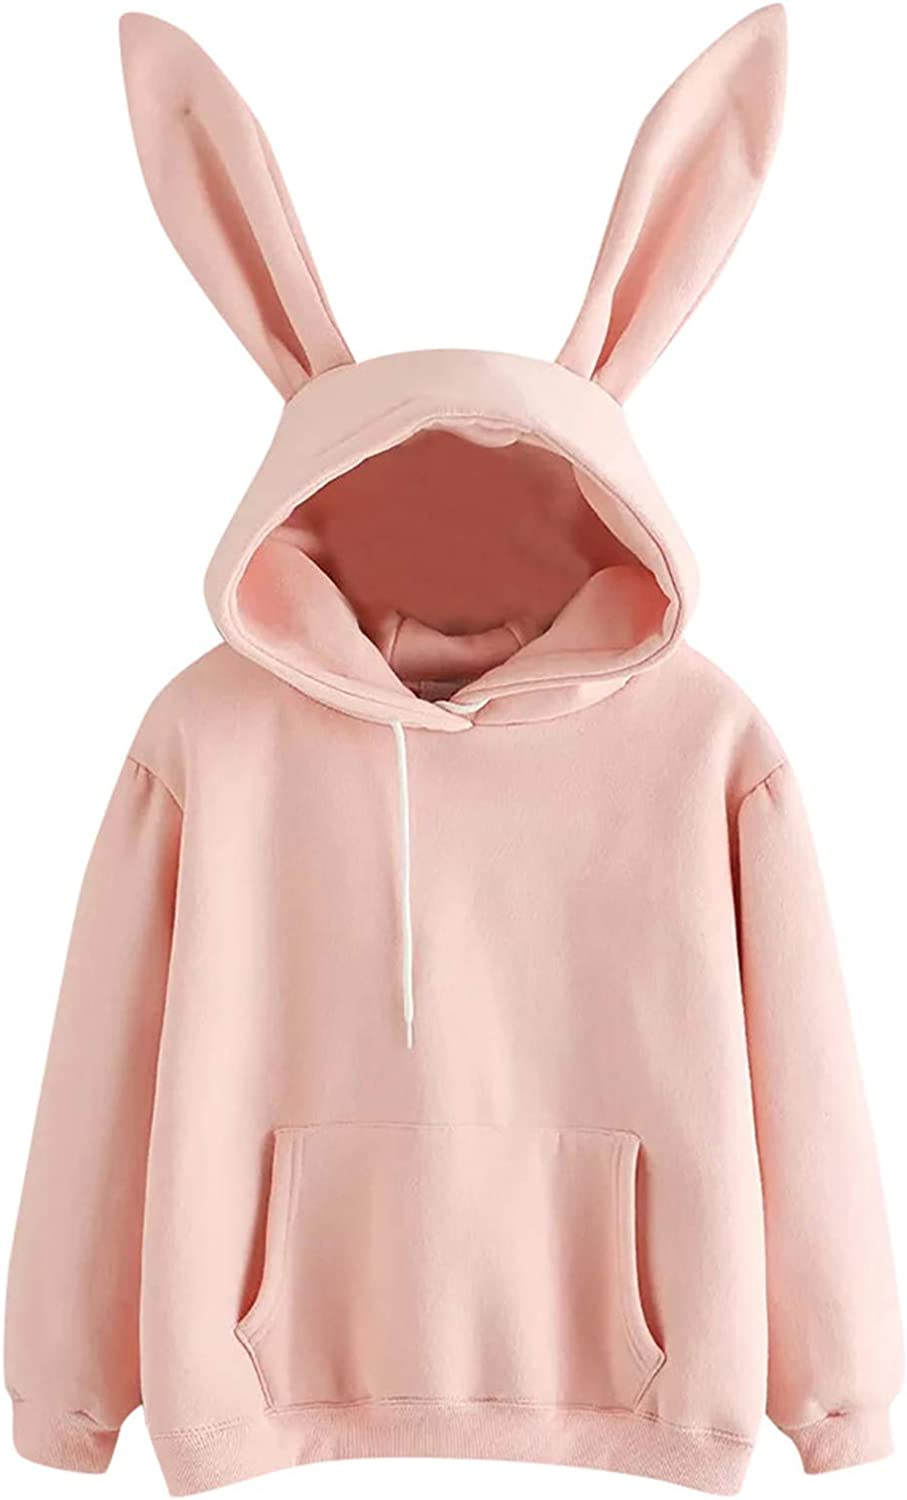 Bosanter Hoodies for Women Pullover Sweatshirts Ear Rabbit Safety and trust Cute Popular brand in the world